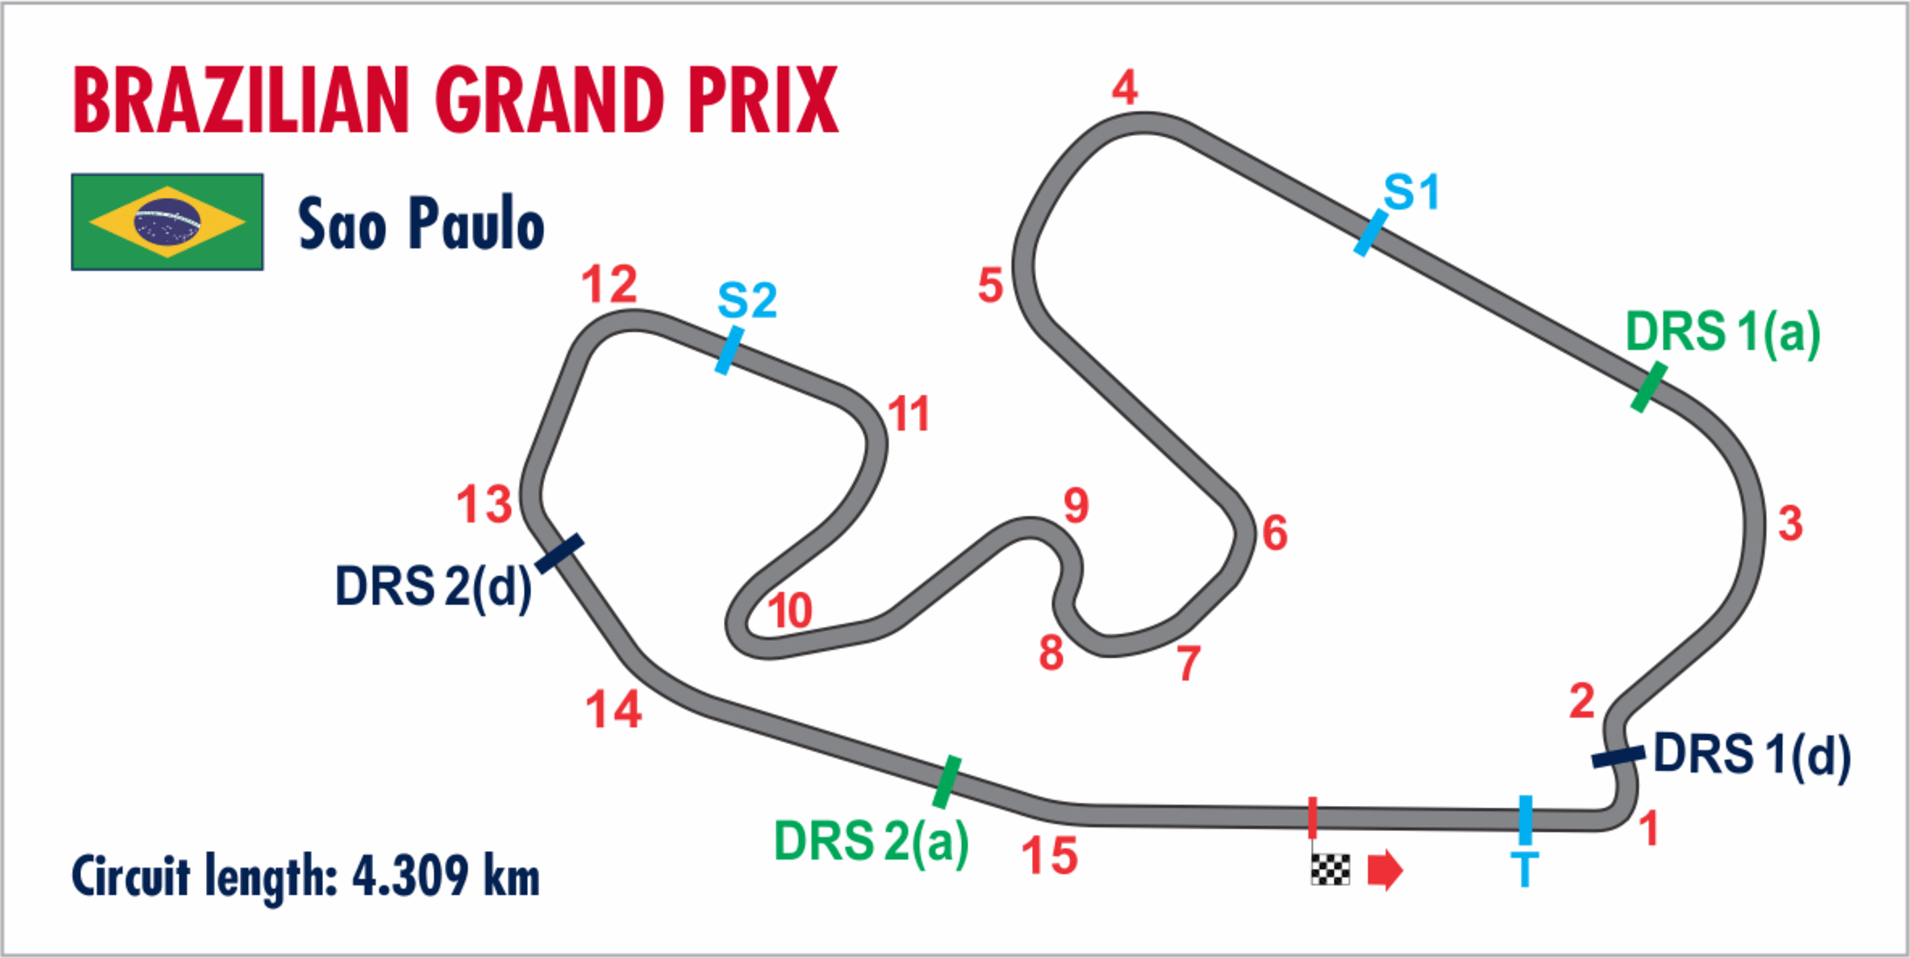 hight resolution of the pit straight and the reta oposta or back straight are both designated as drs zones which means slipstreaming comes into play